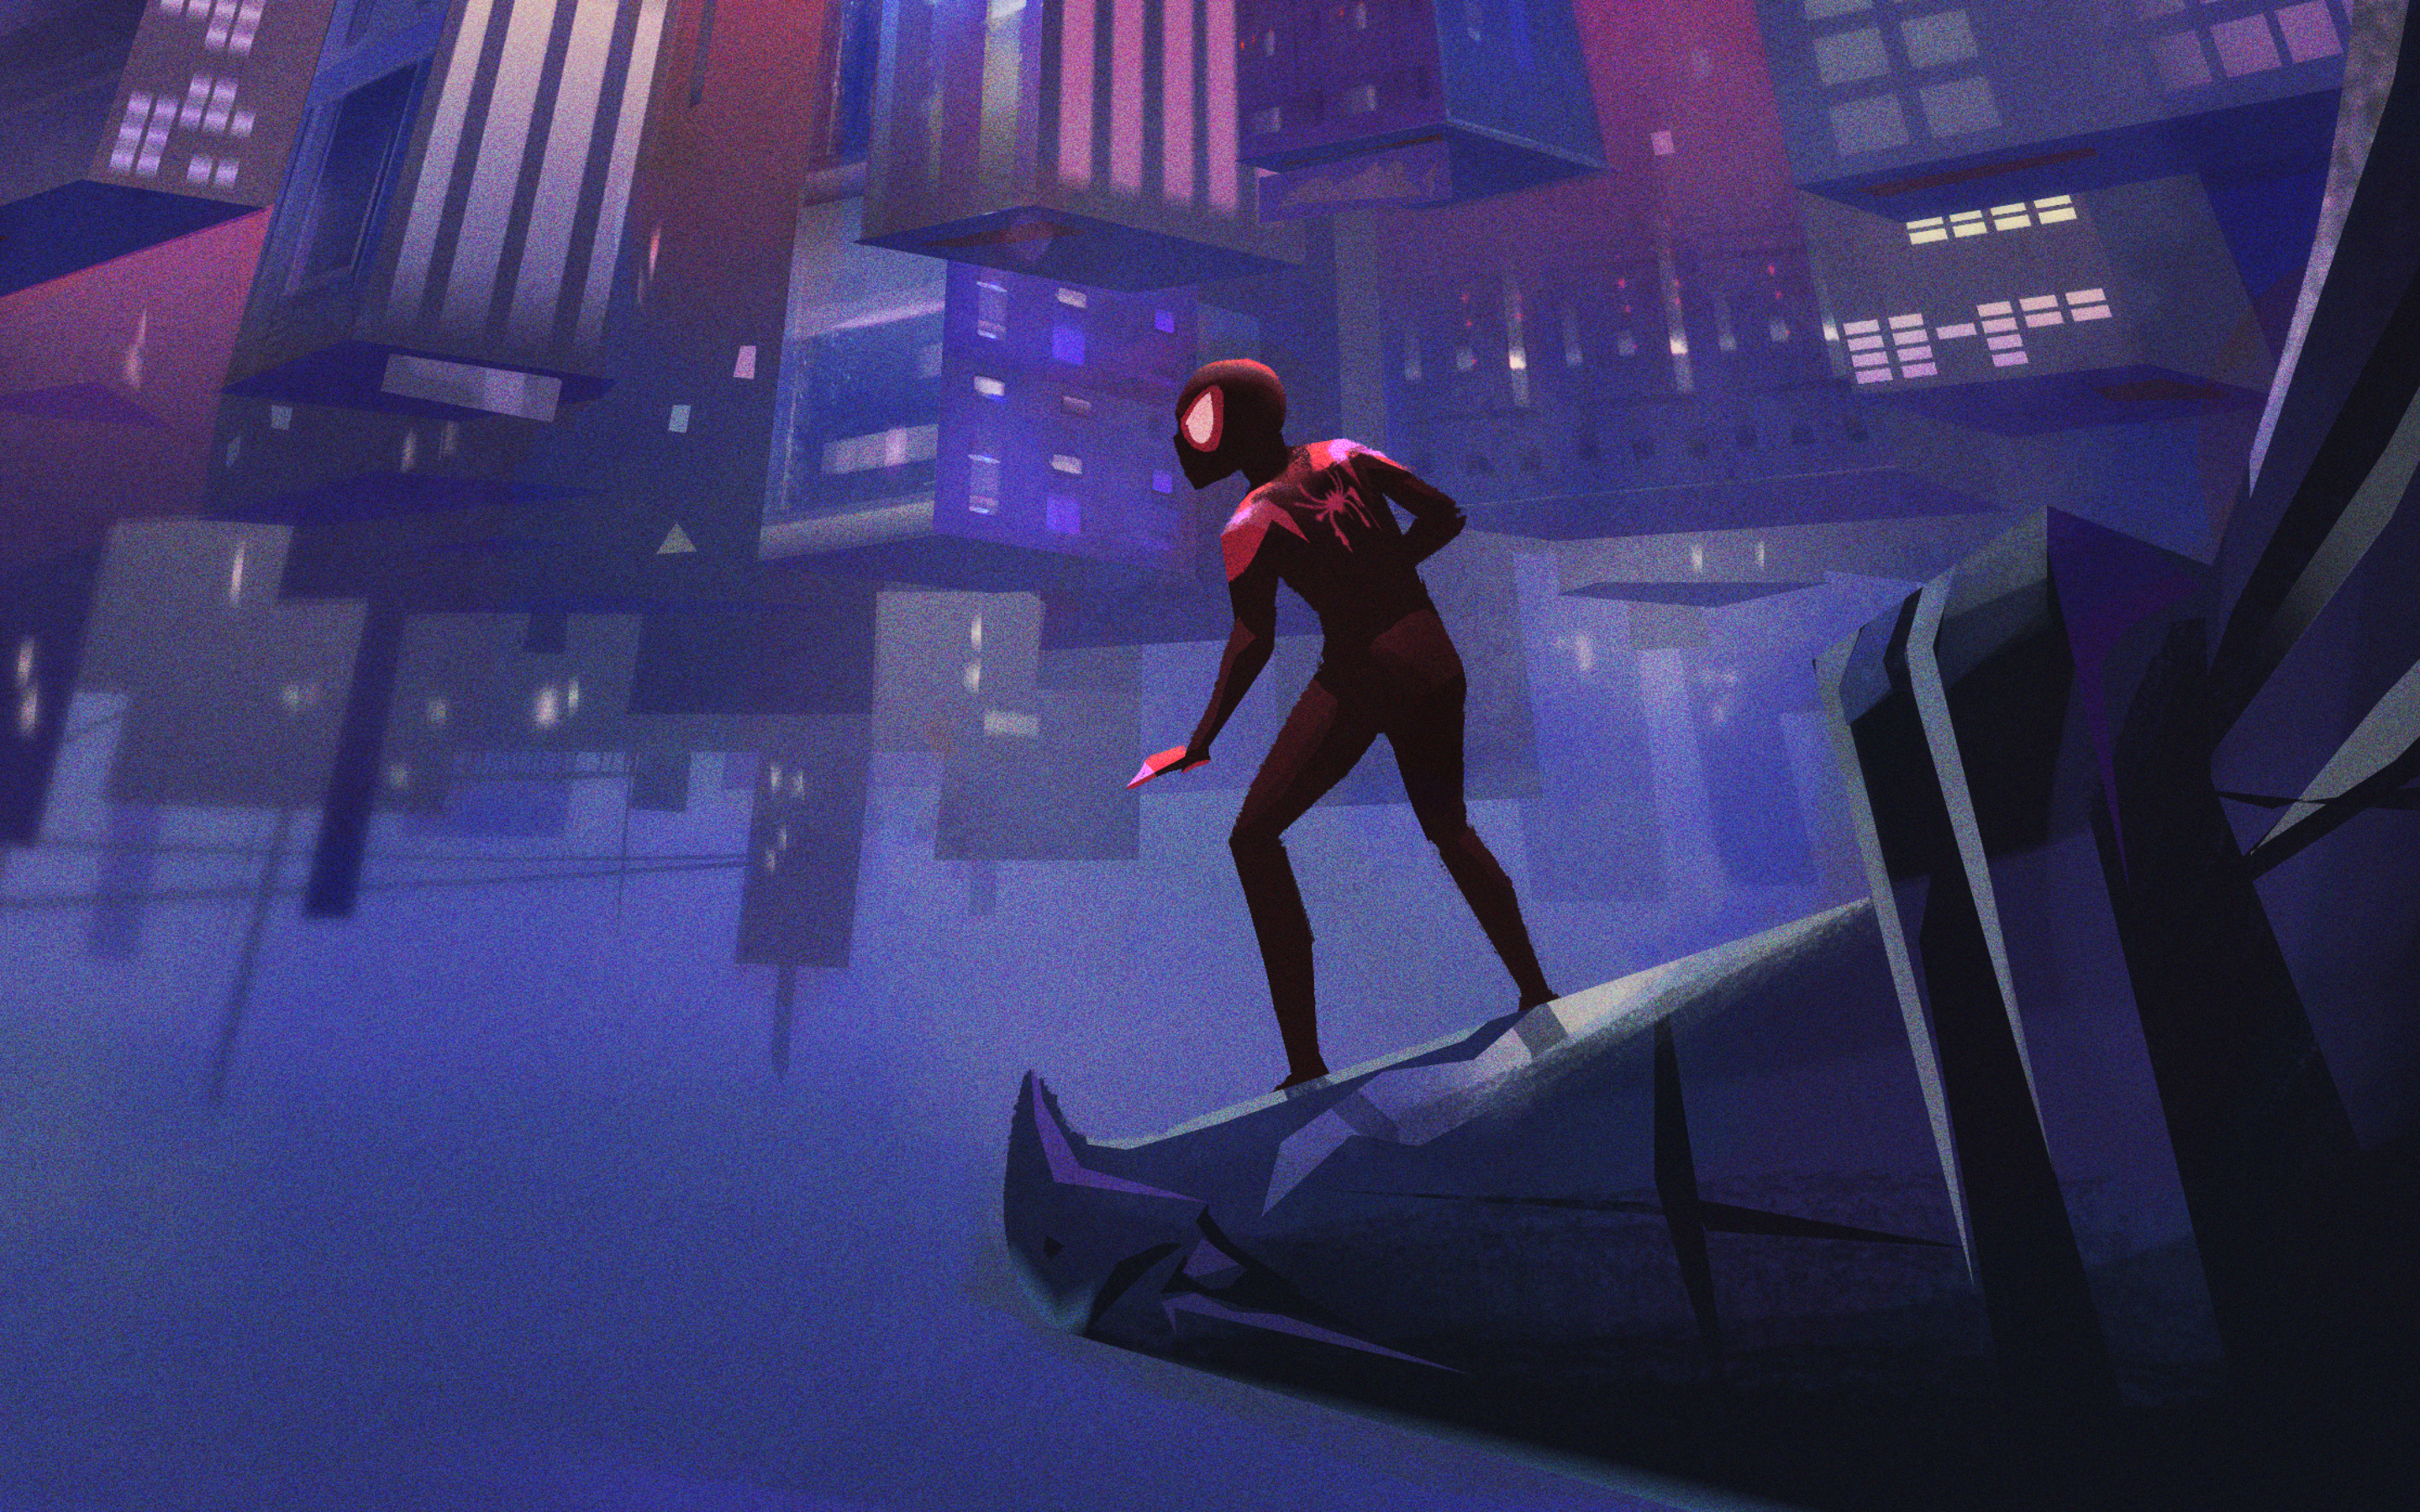 Into The Spider Verse X Wallpaper Iwallpaper: 2880x1800 SpiderMan Into The Spider Verse Artworks Macbook